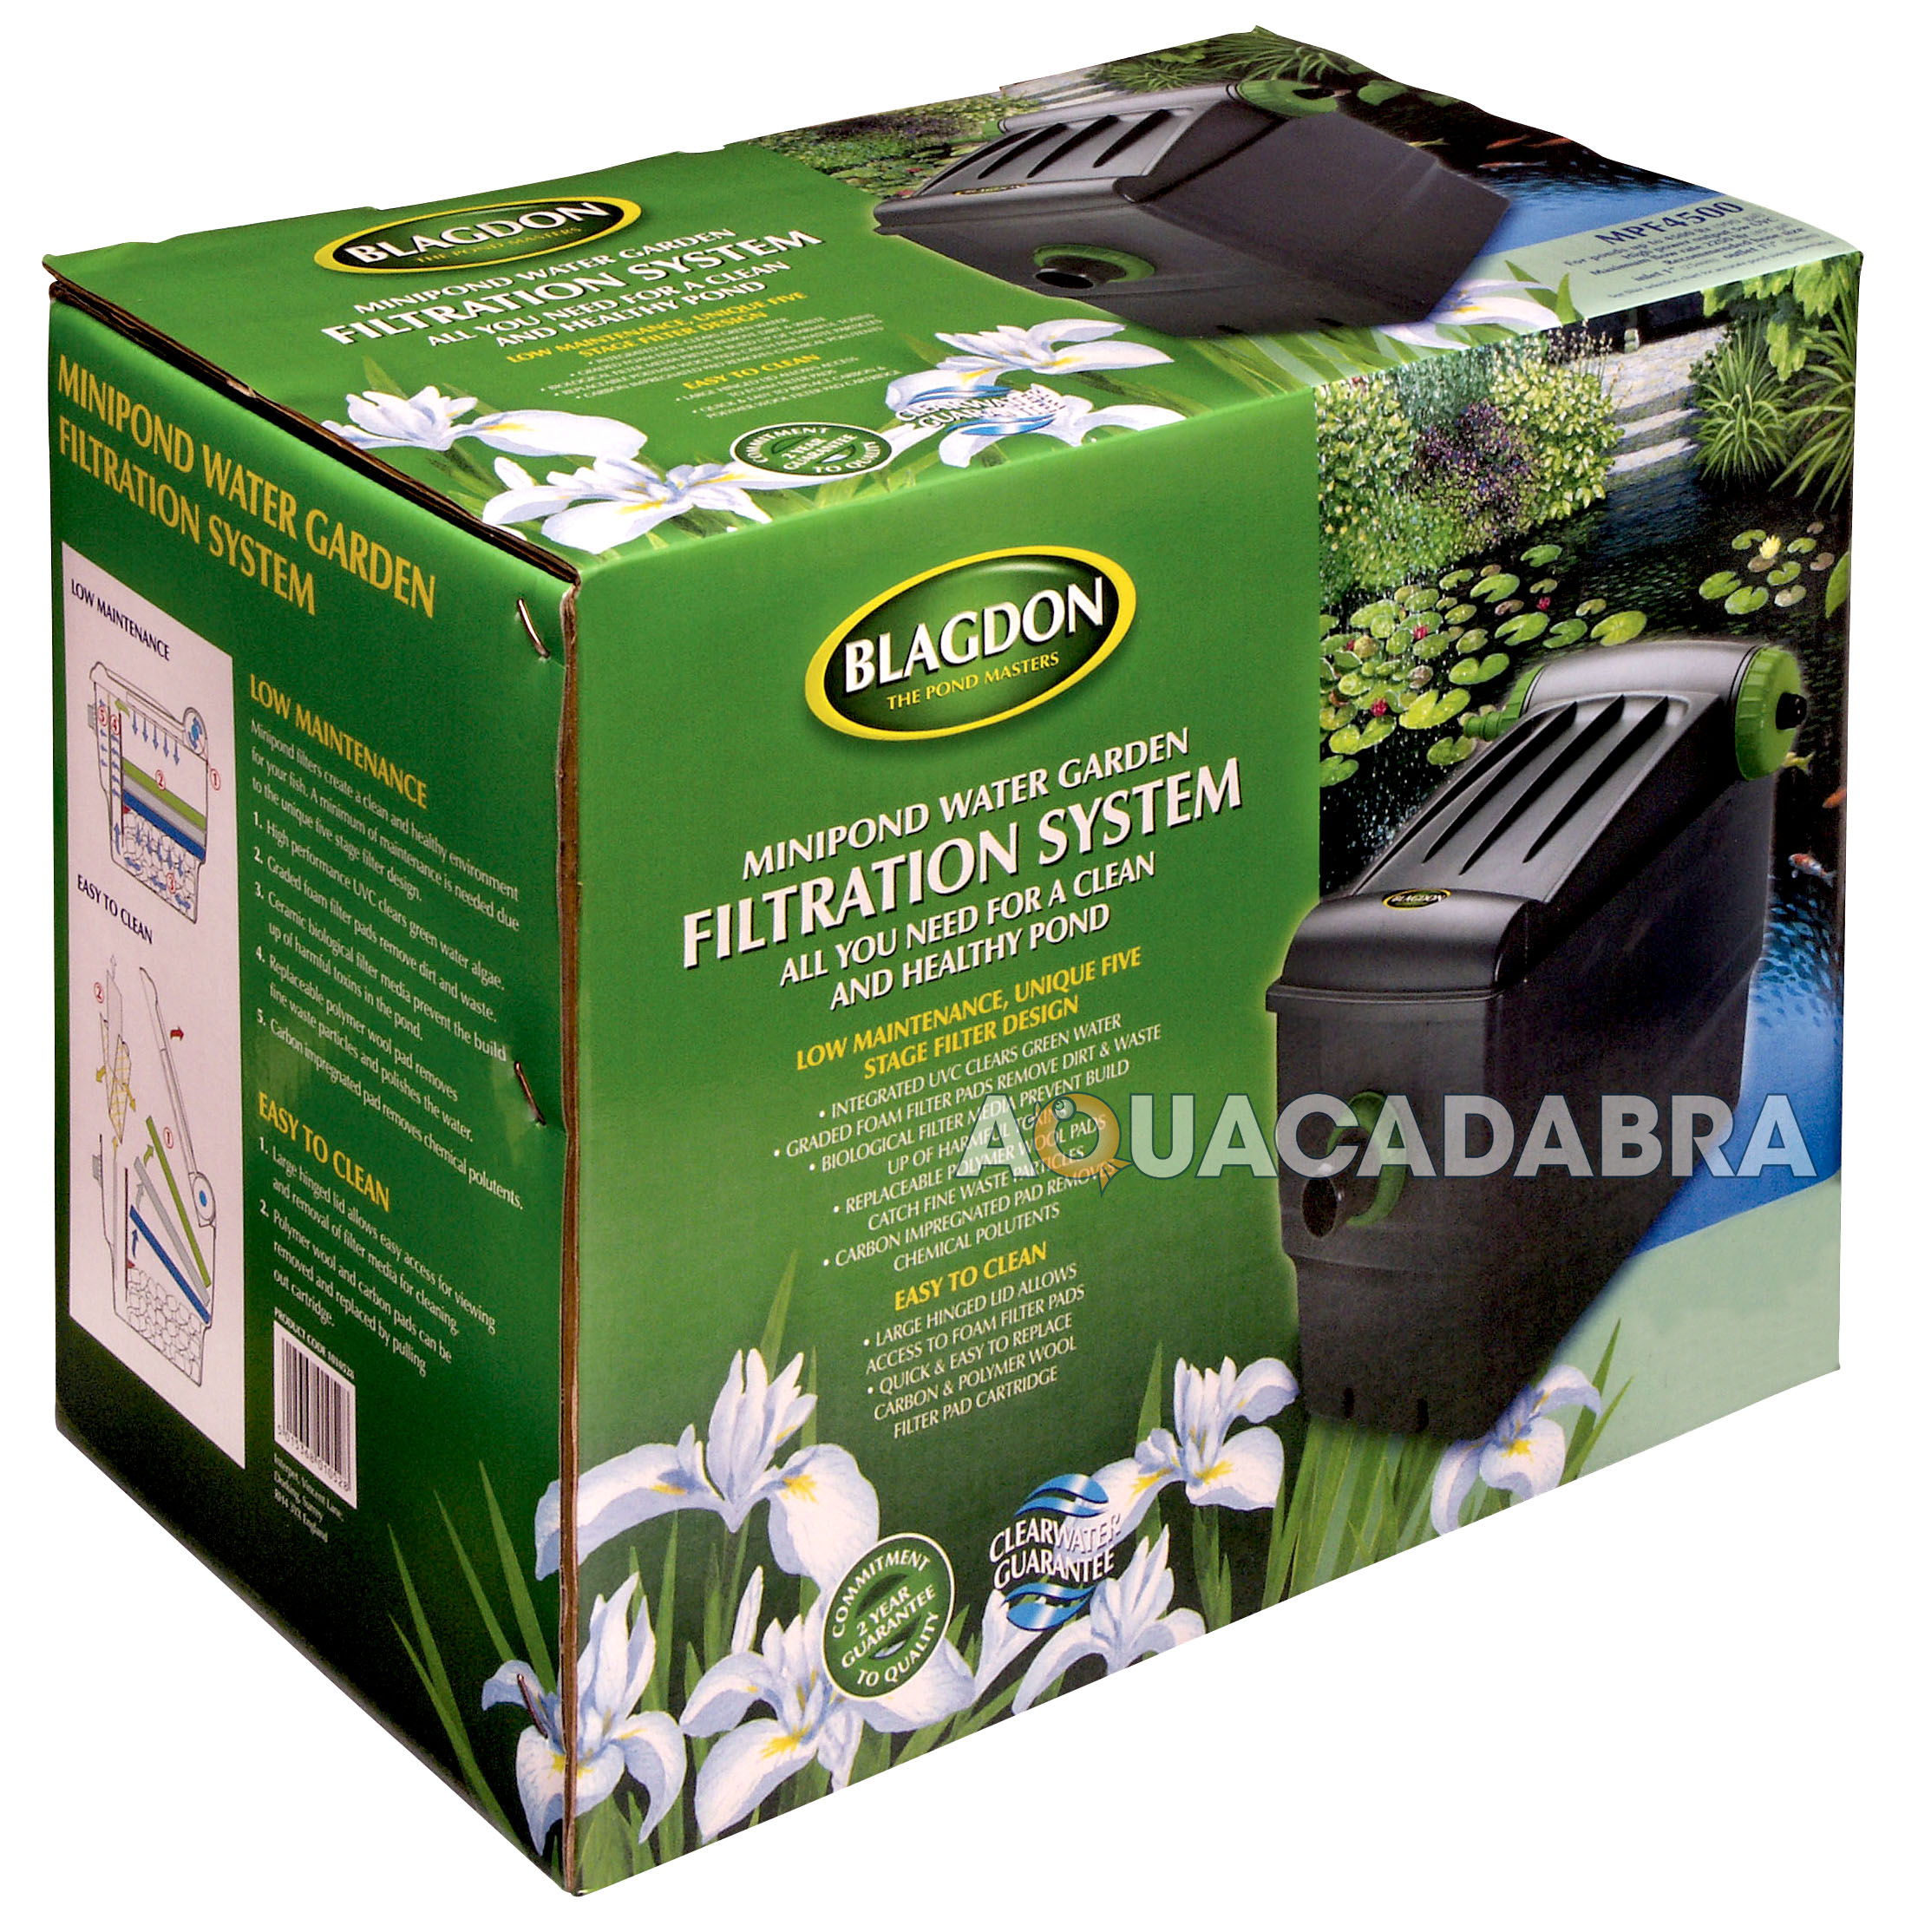 Blagdon Minipond 6000 Filter Uv Gravity 9w Uvc Pond Garden